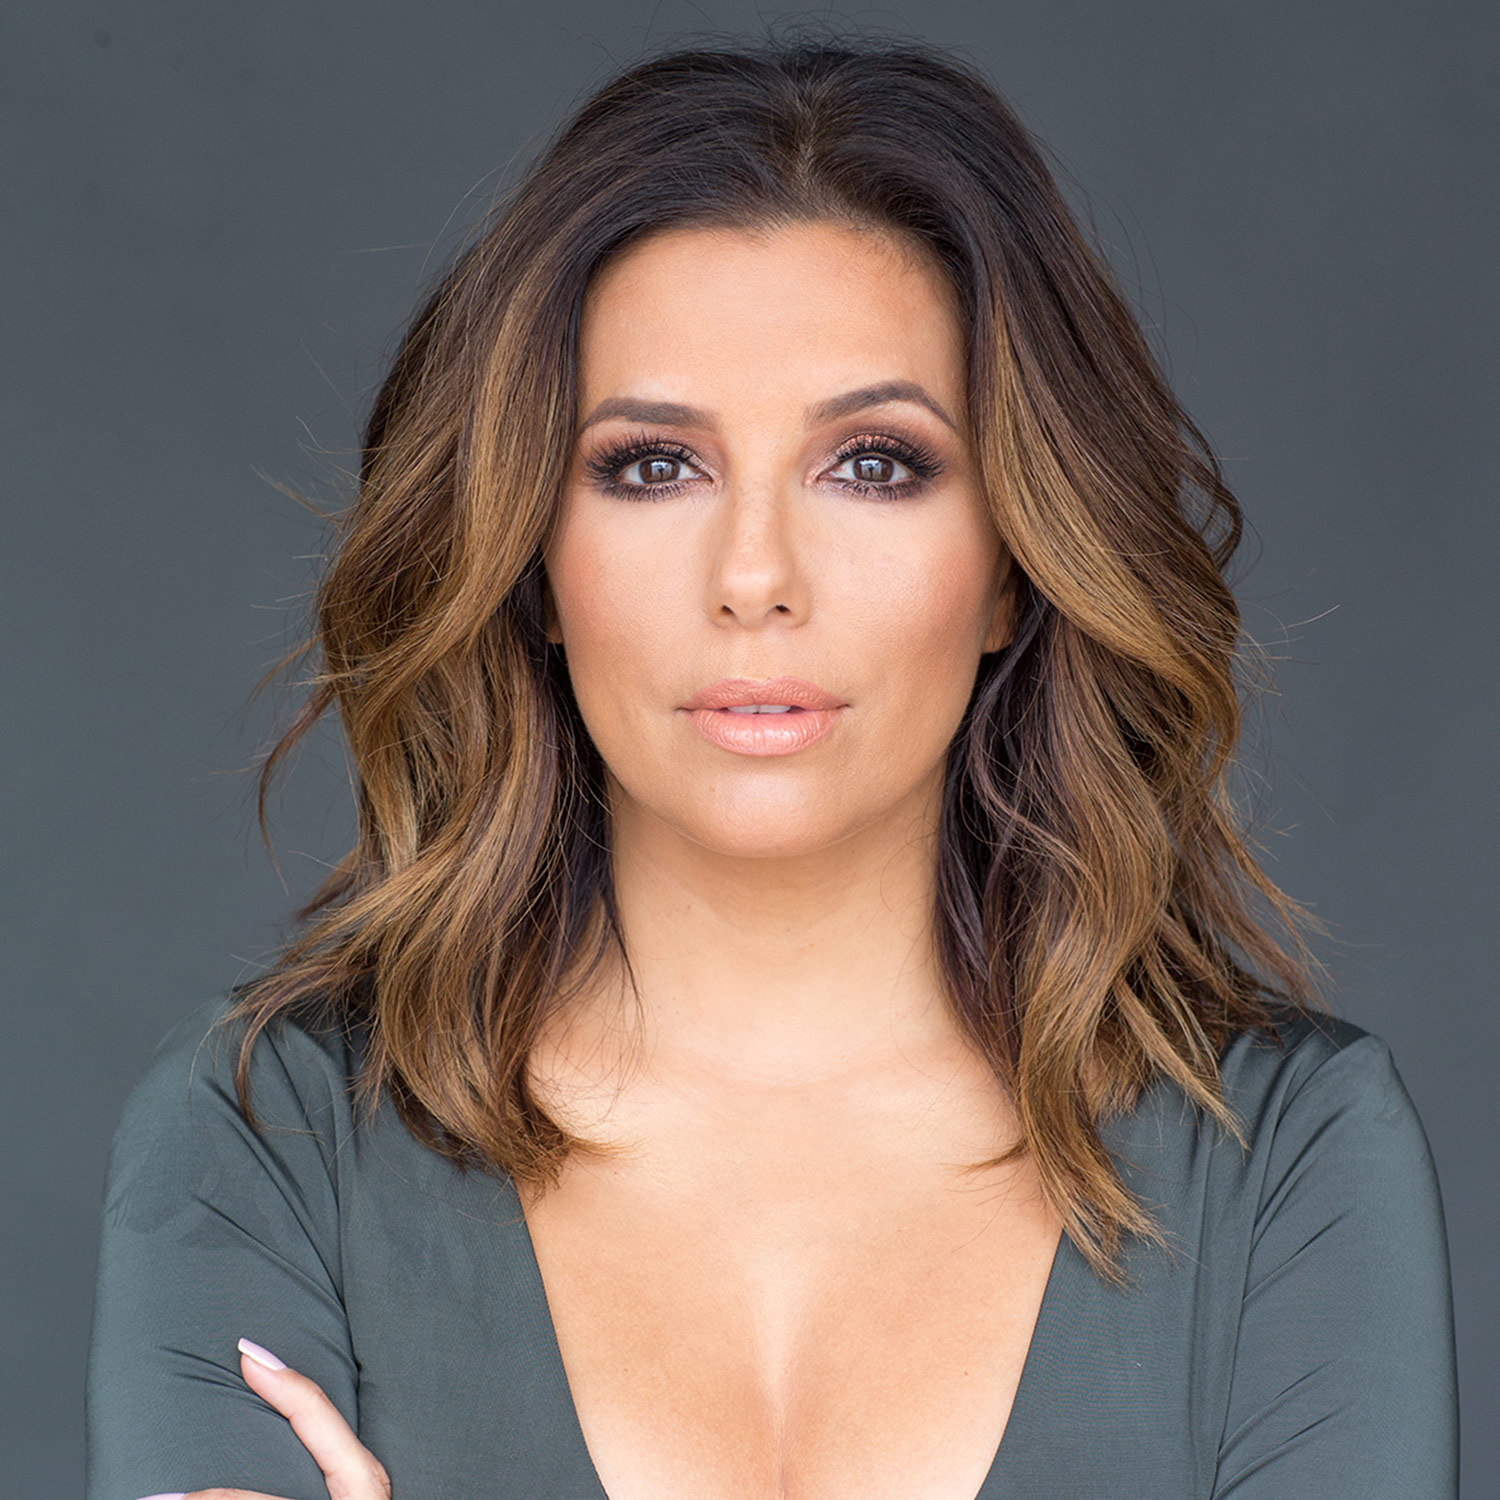 Pictures Eva Longoria nude photos 2019